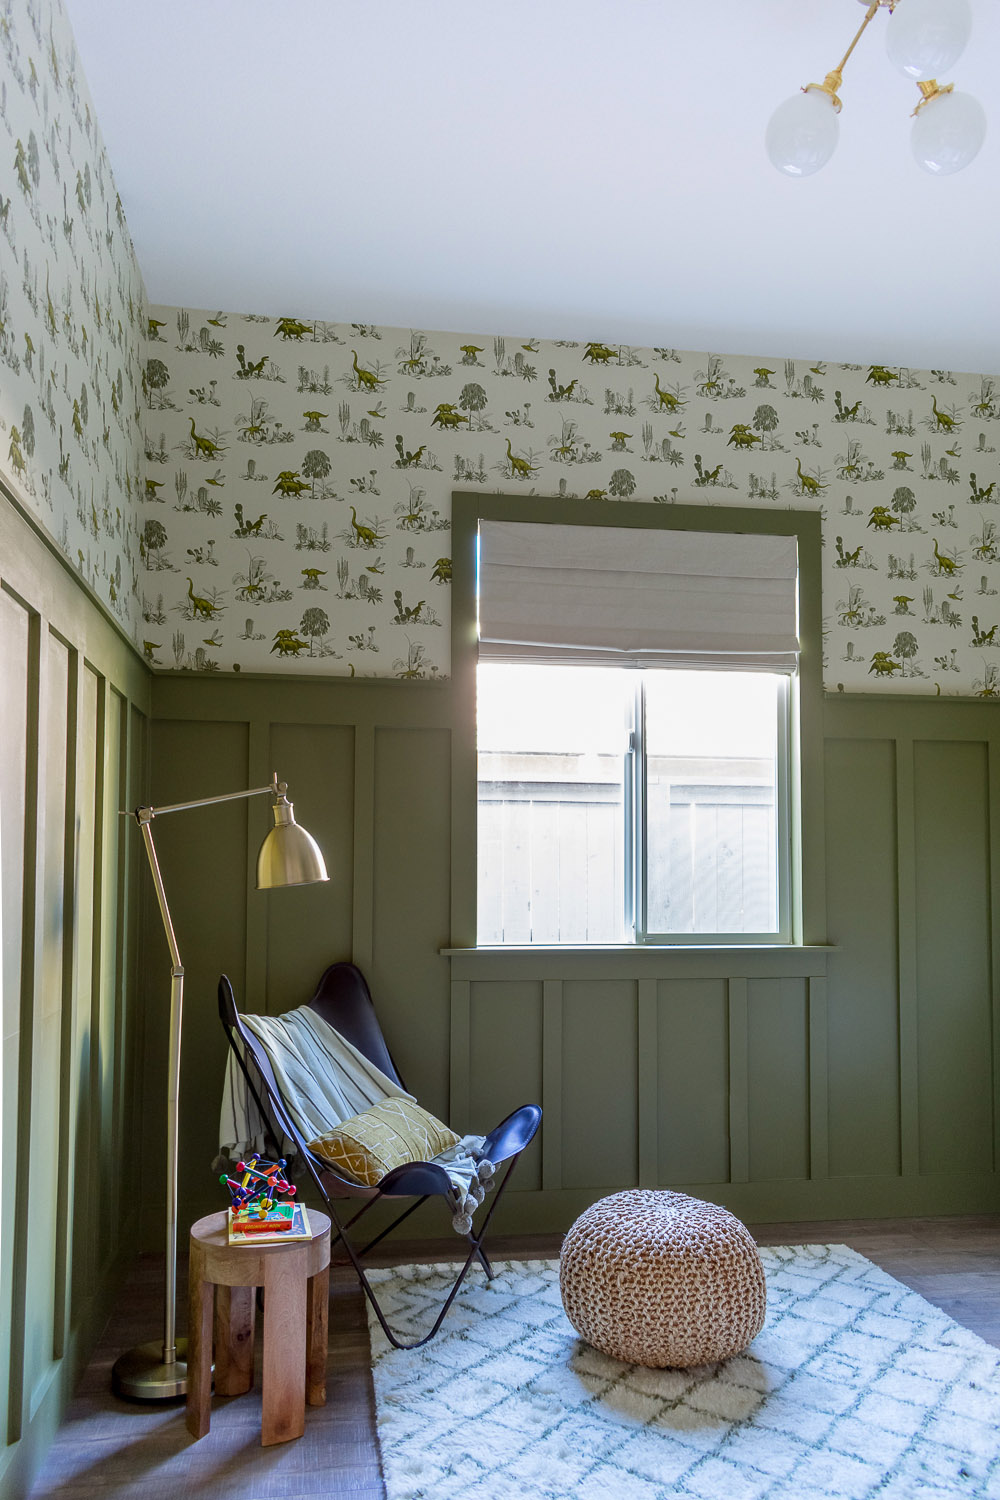 Baby Boy Dinosaur themed nursery will olive green walls, wood paneling, wallpaper, and leather butterfly chair by Beebout Design.